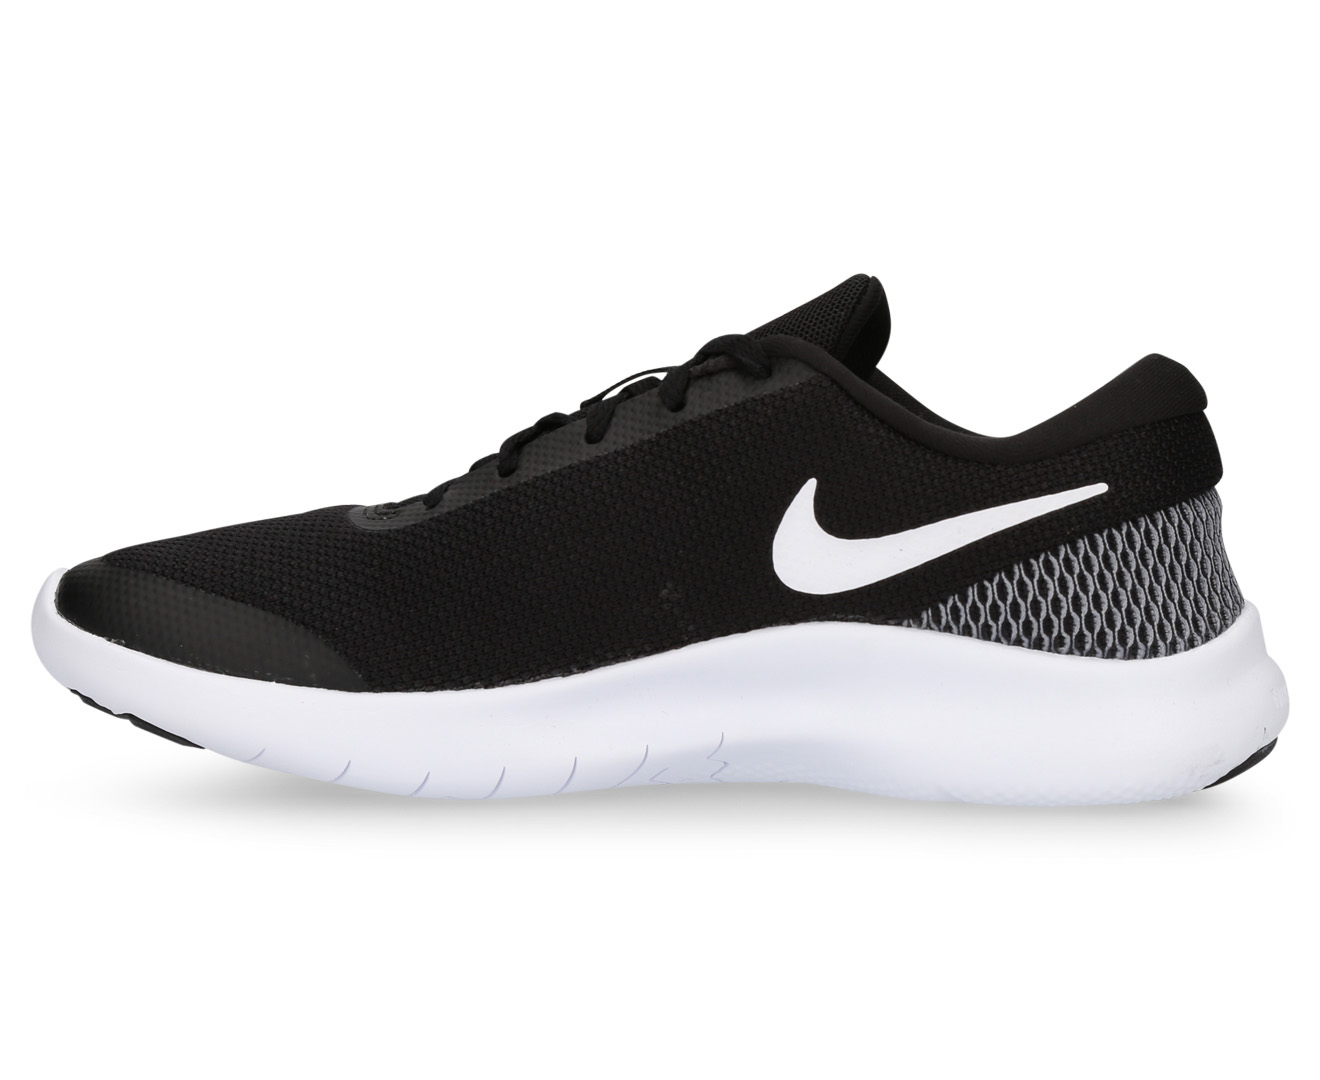 c20368f6a4a4 Nike Women s Flex Experience RN 7 Shoe - Black White